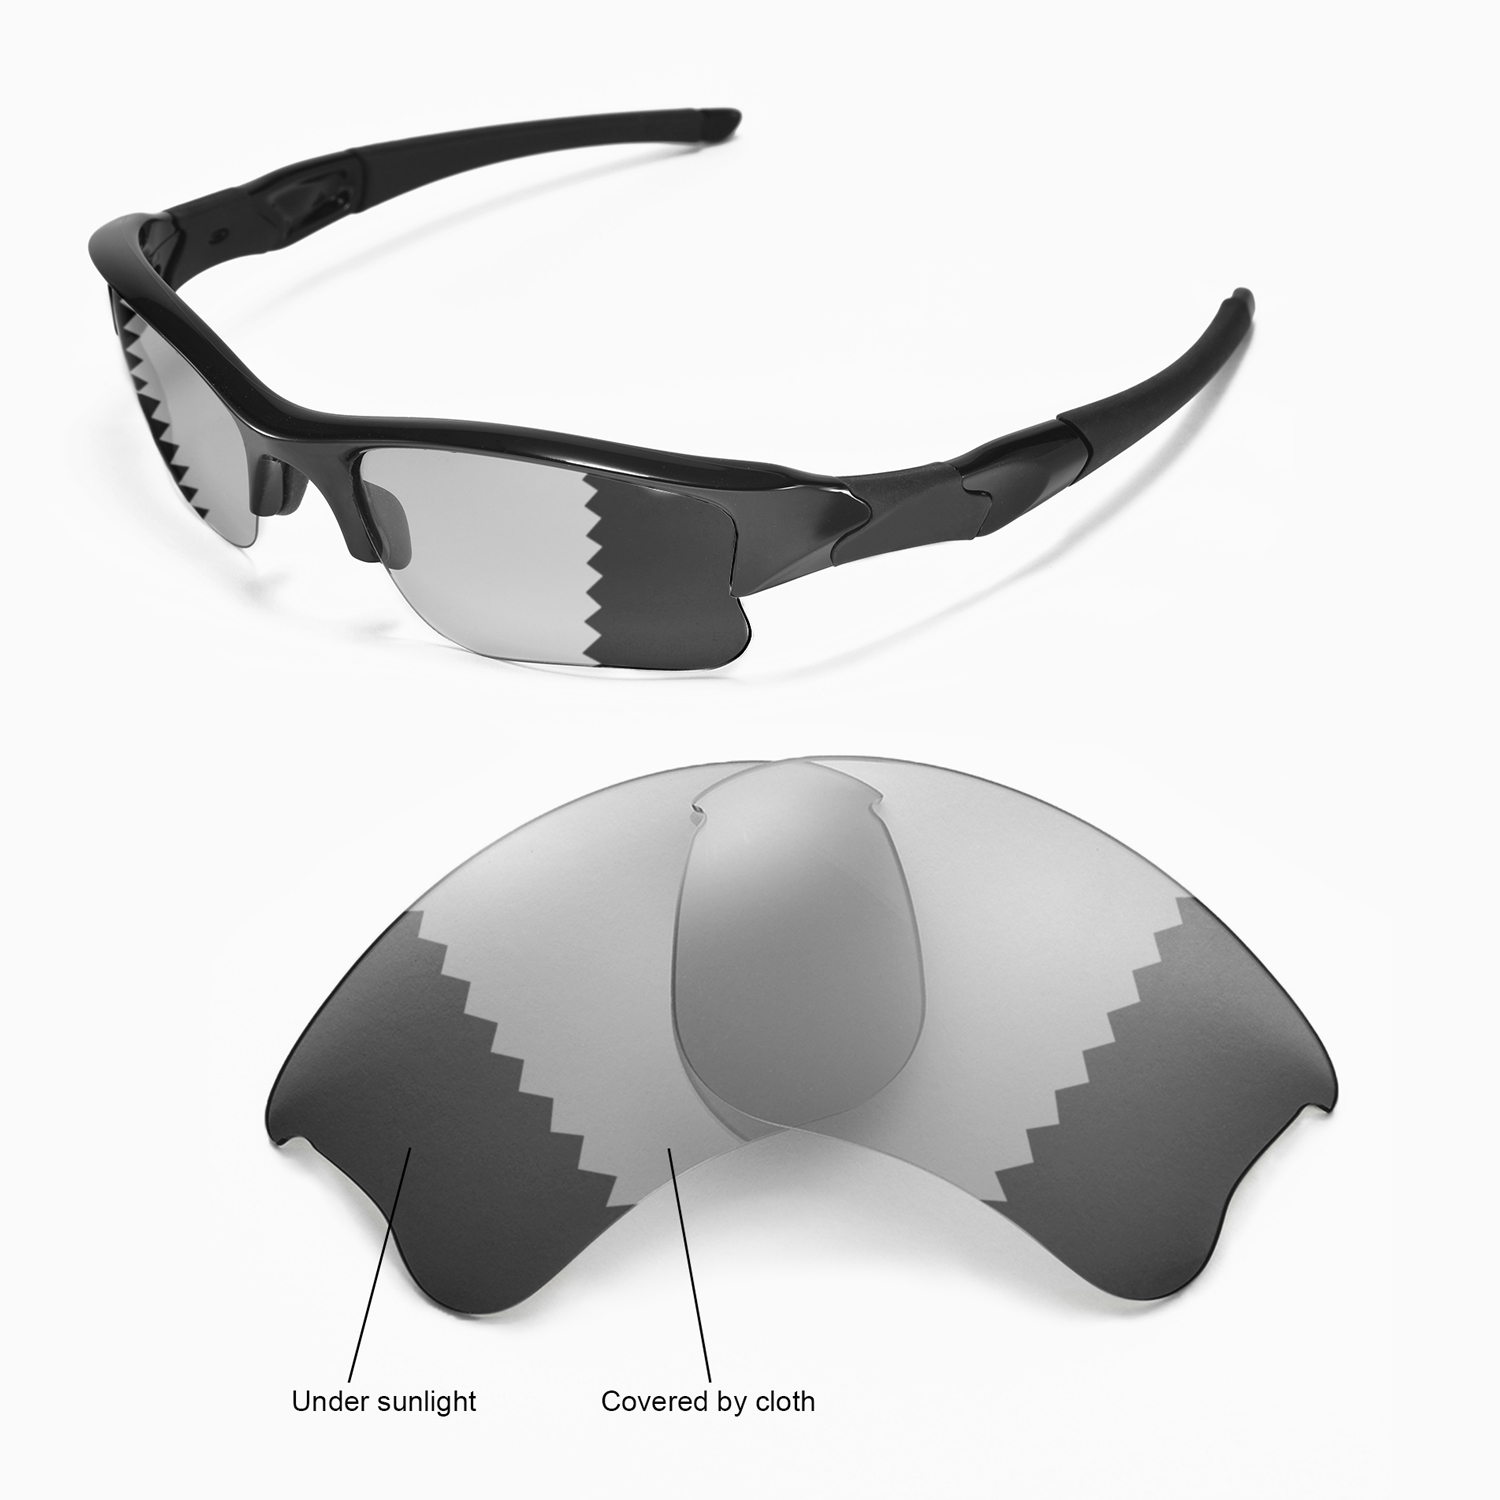 93edbd5828 Details about New Walleva Polarized Transition Photochromic Lenses For Oakley  Flak Jacket XLJ